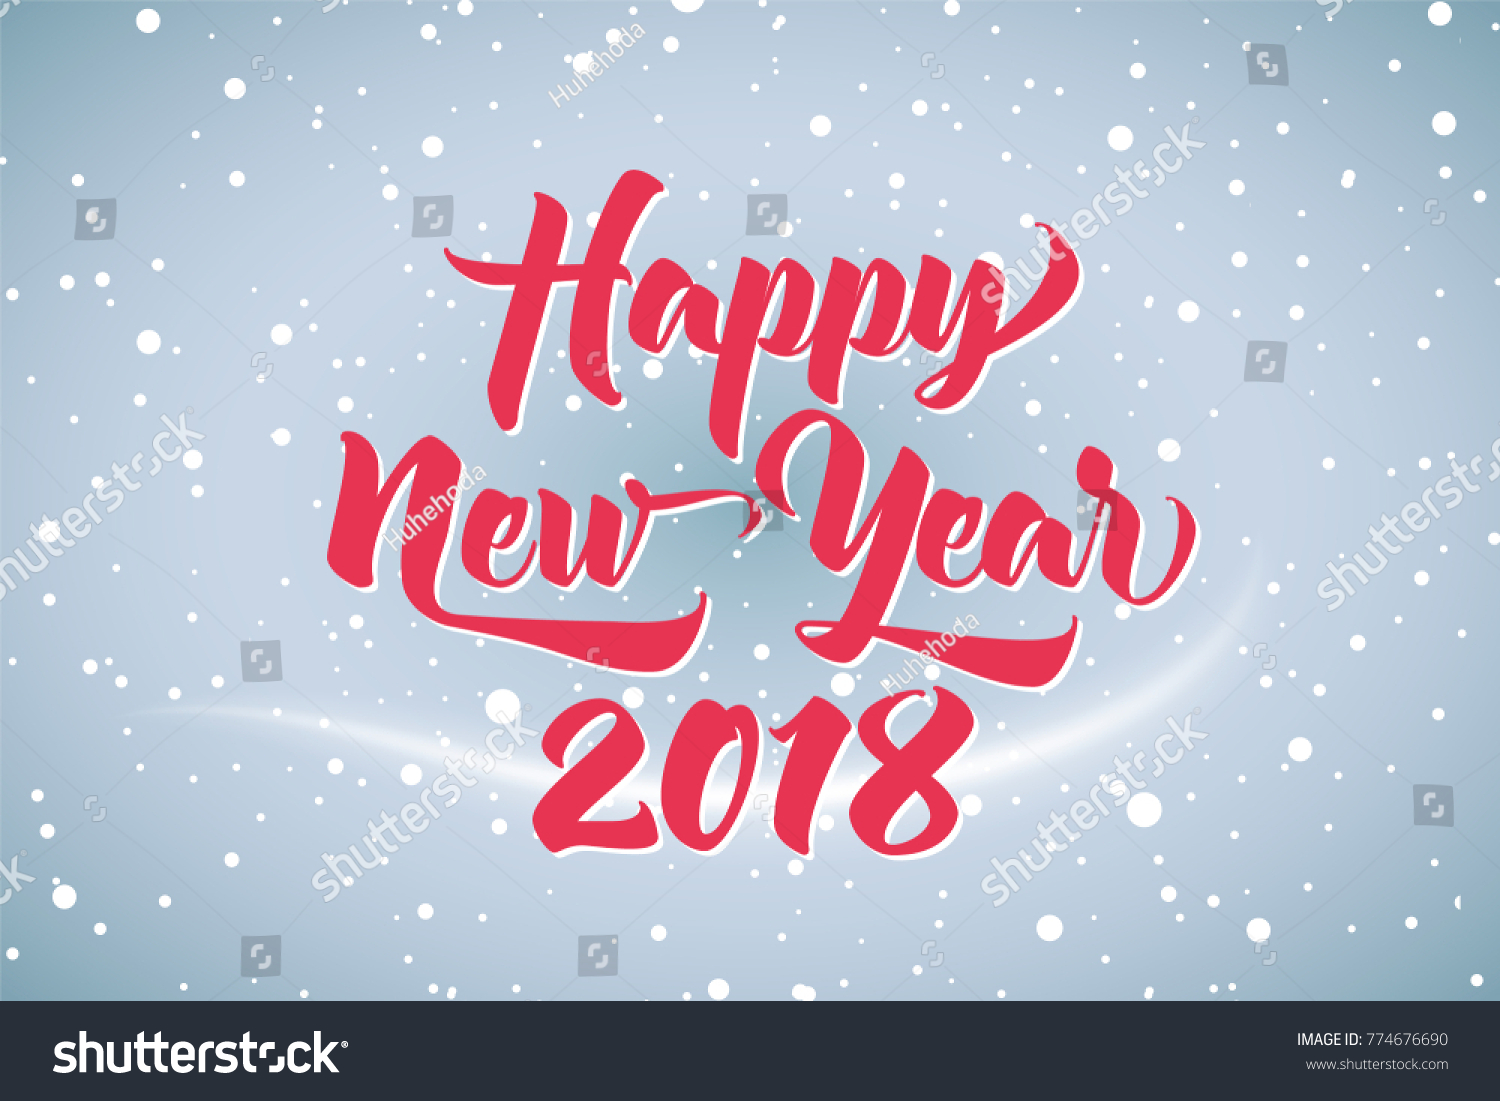 Happy New Year 2018 Beautiful Greeting Stock Vector (Royalty Free ...